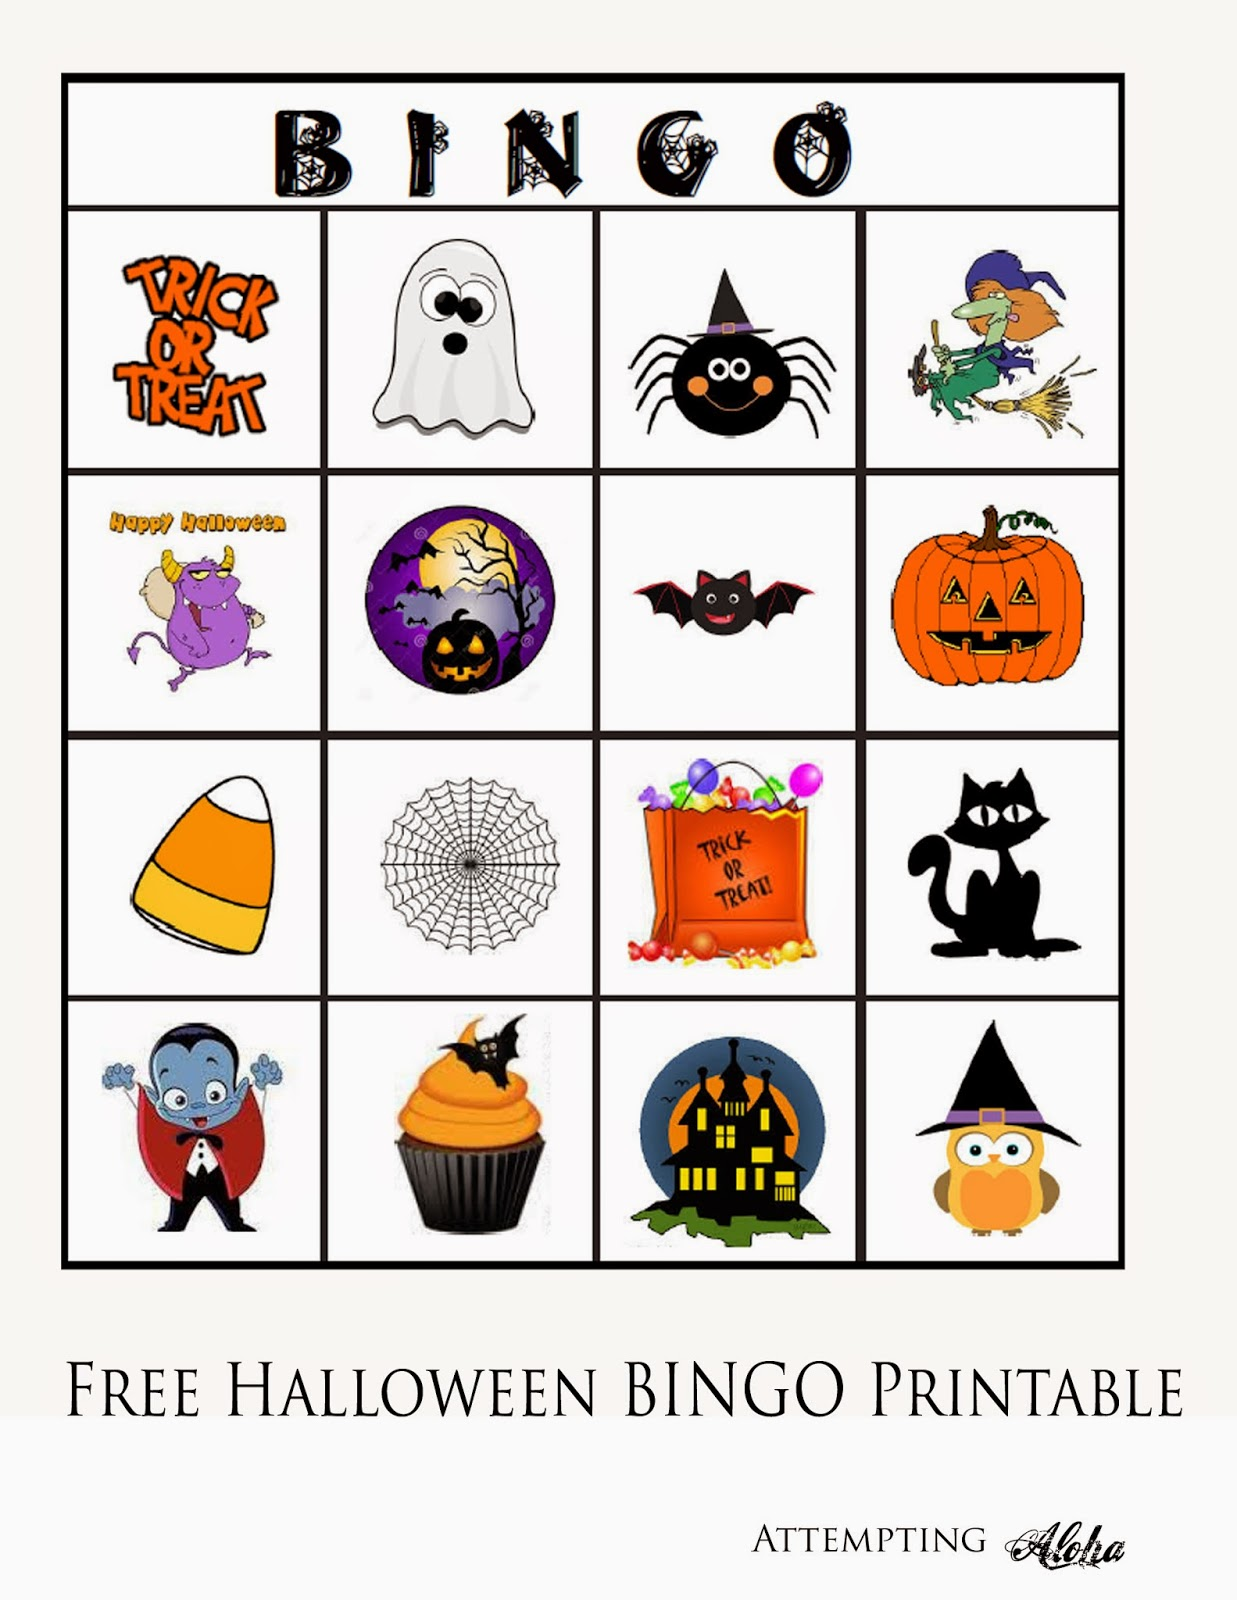 Free Halloween Bingo Printable For Little Kids